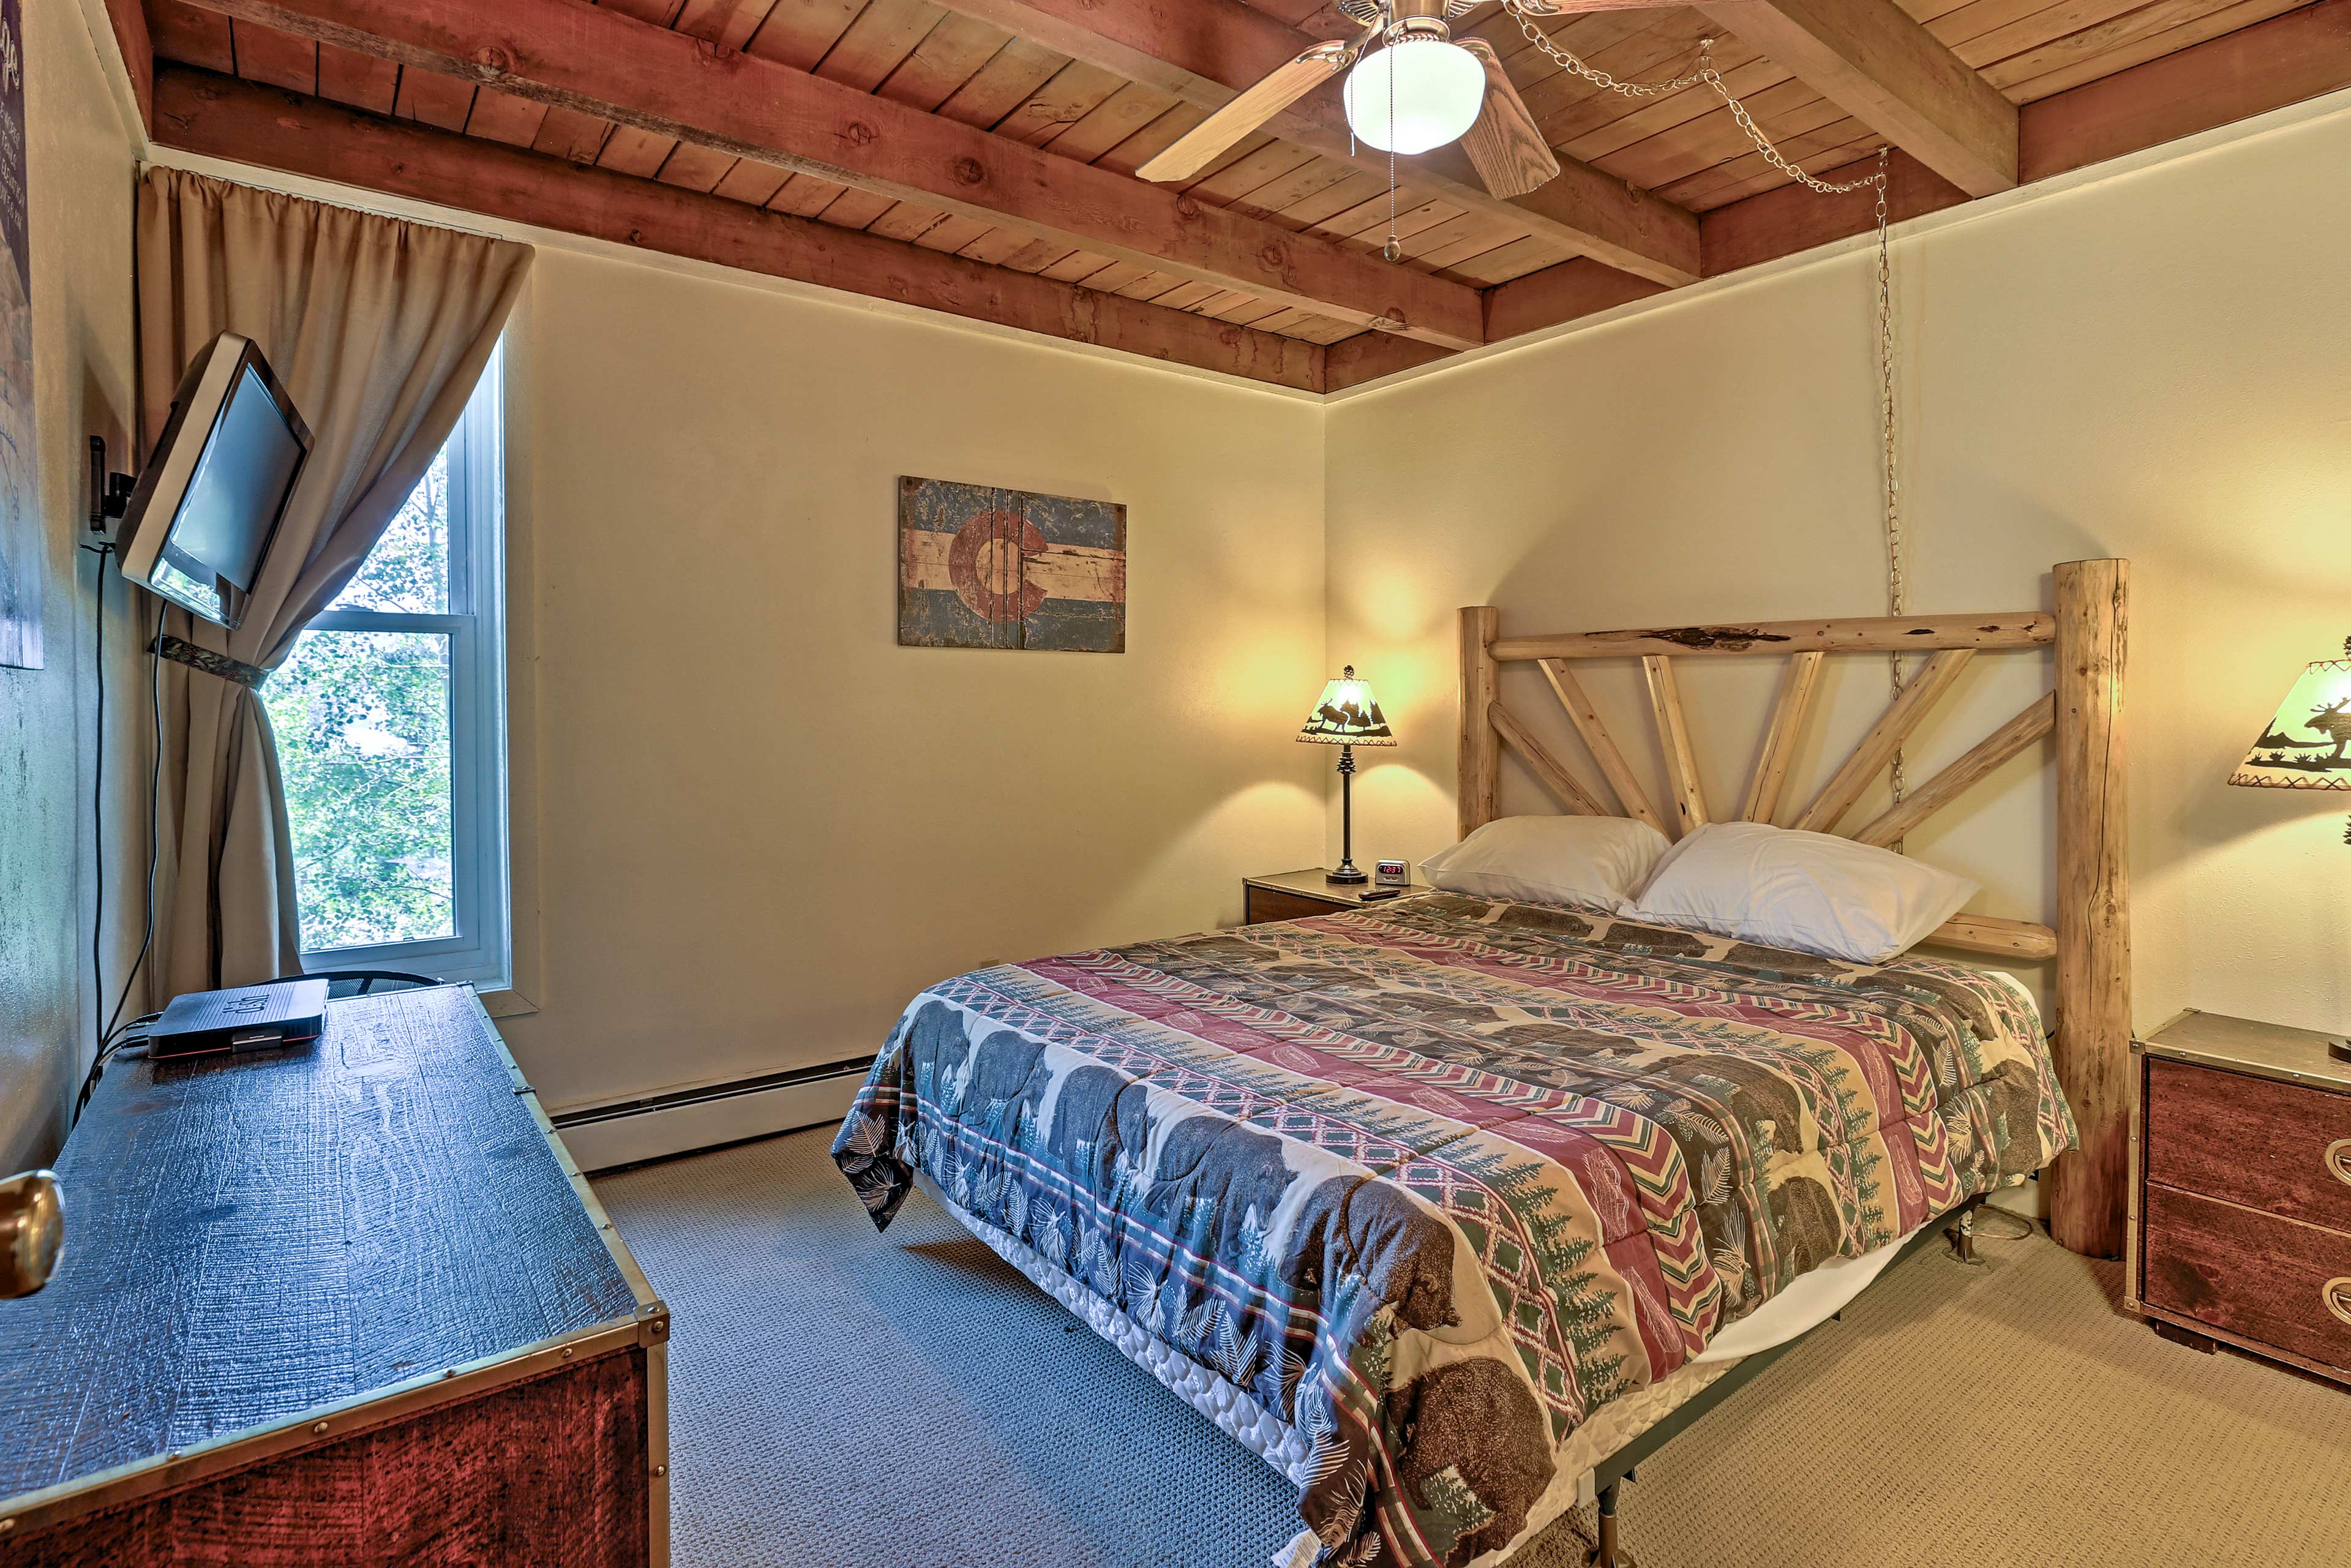 Sink into the cozy queen bed in the first bedroom.